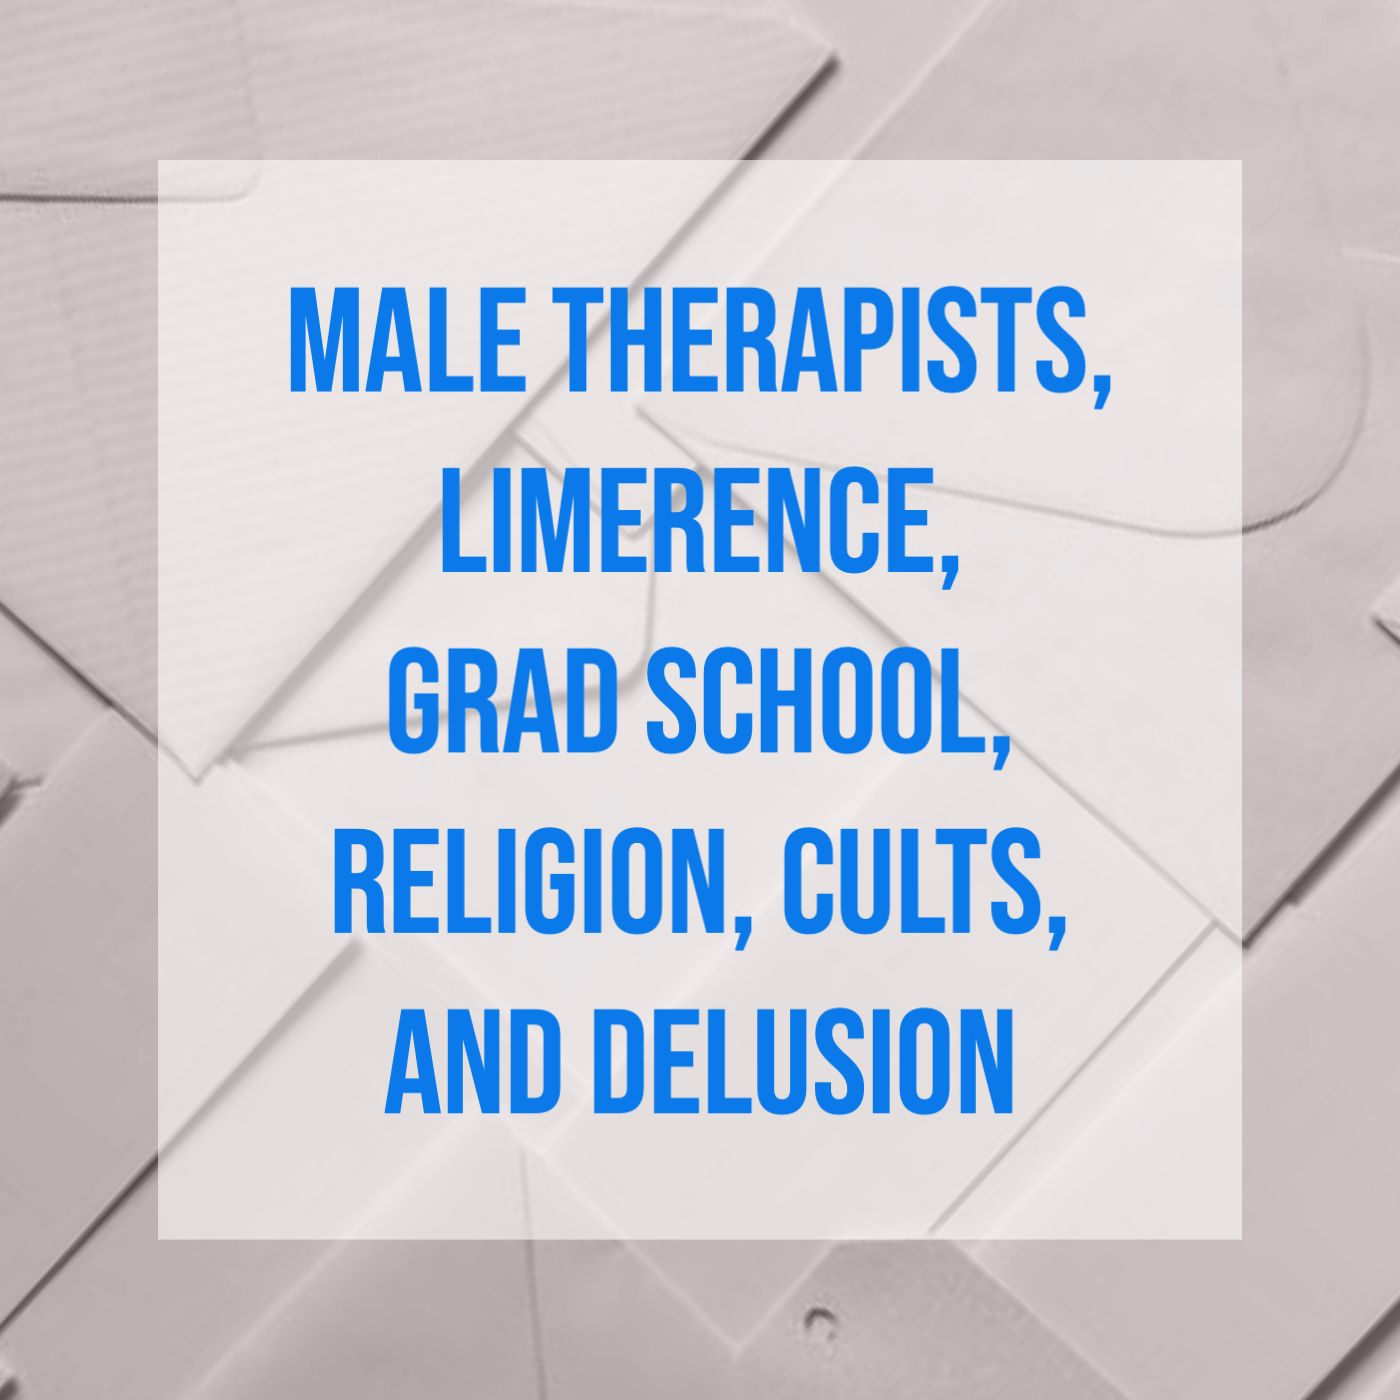 Male Therapists, Limerence, Grad School, Religion, Cults, and Delusion